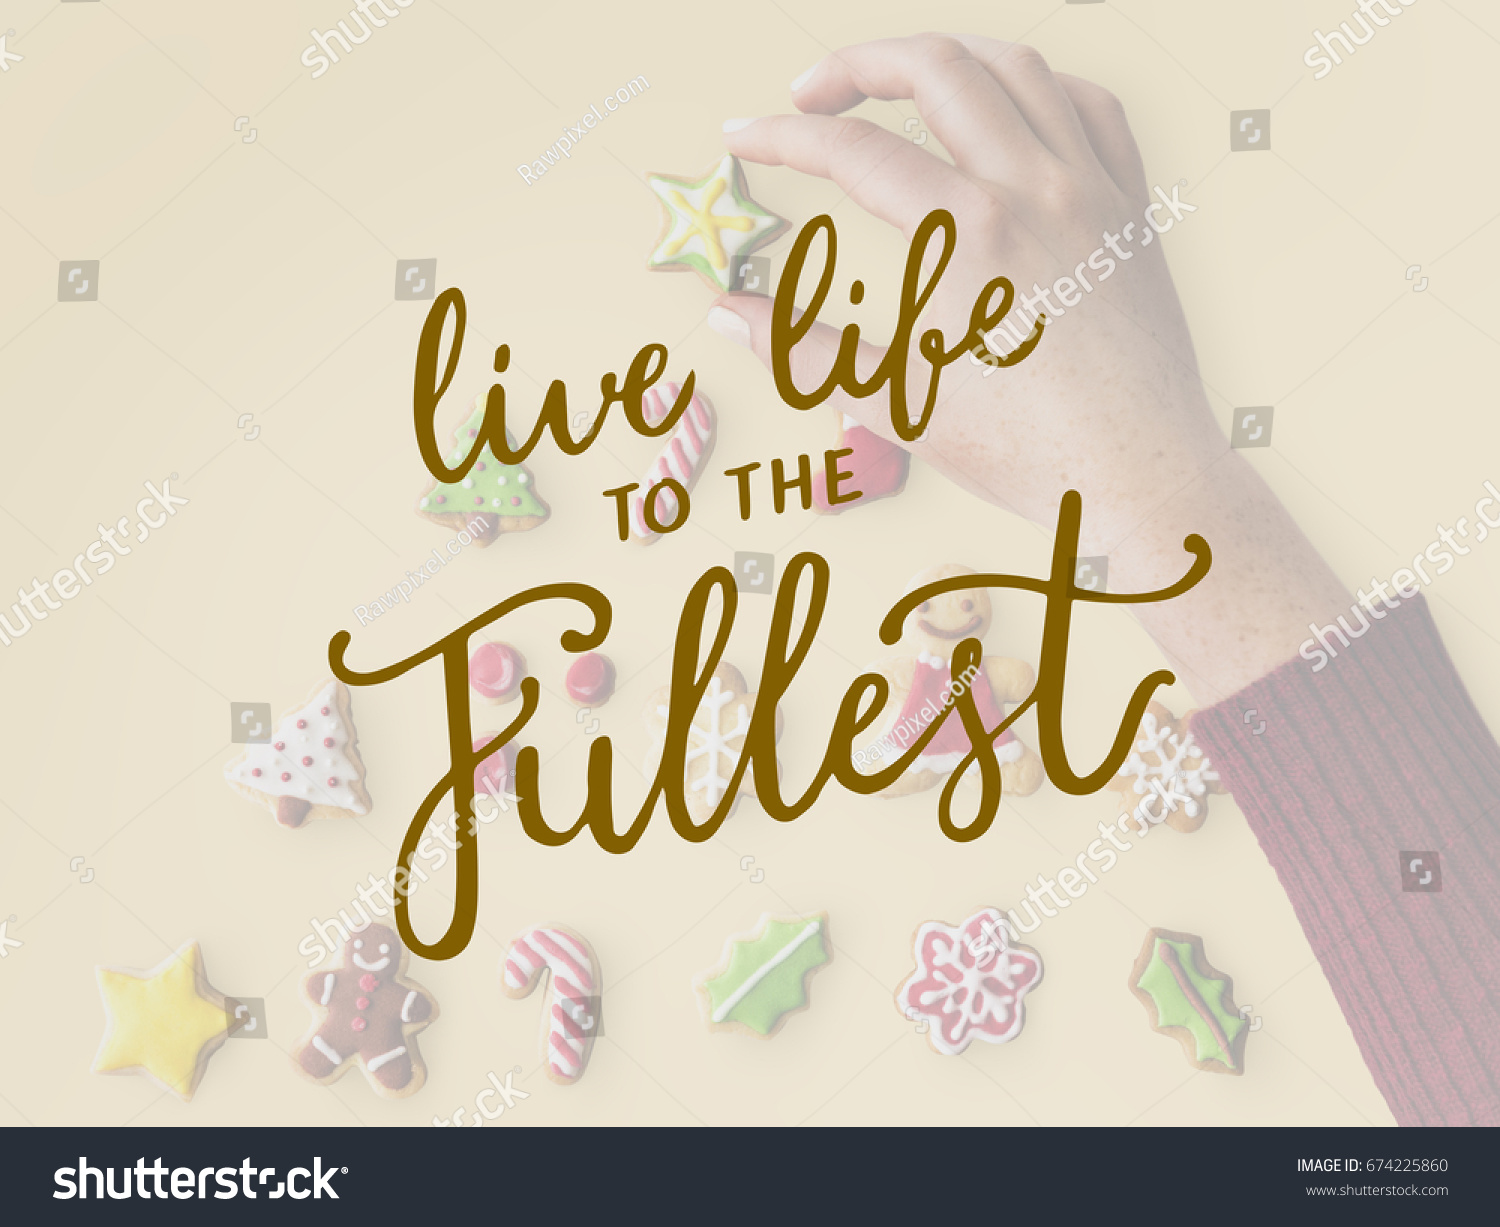 Live Life To The Fullest Quotes Live Life Fullest Quote Message Stock Photo 674225860  Shutterstock